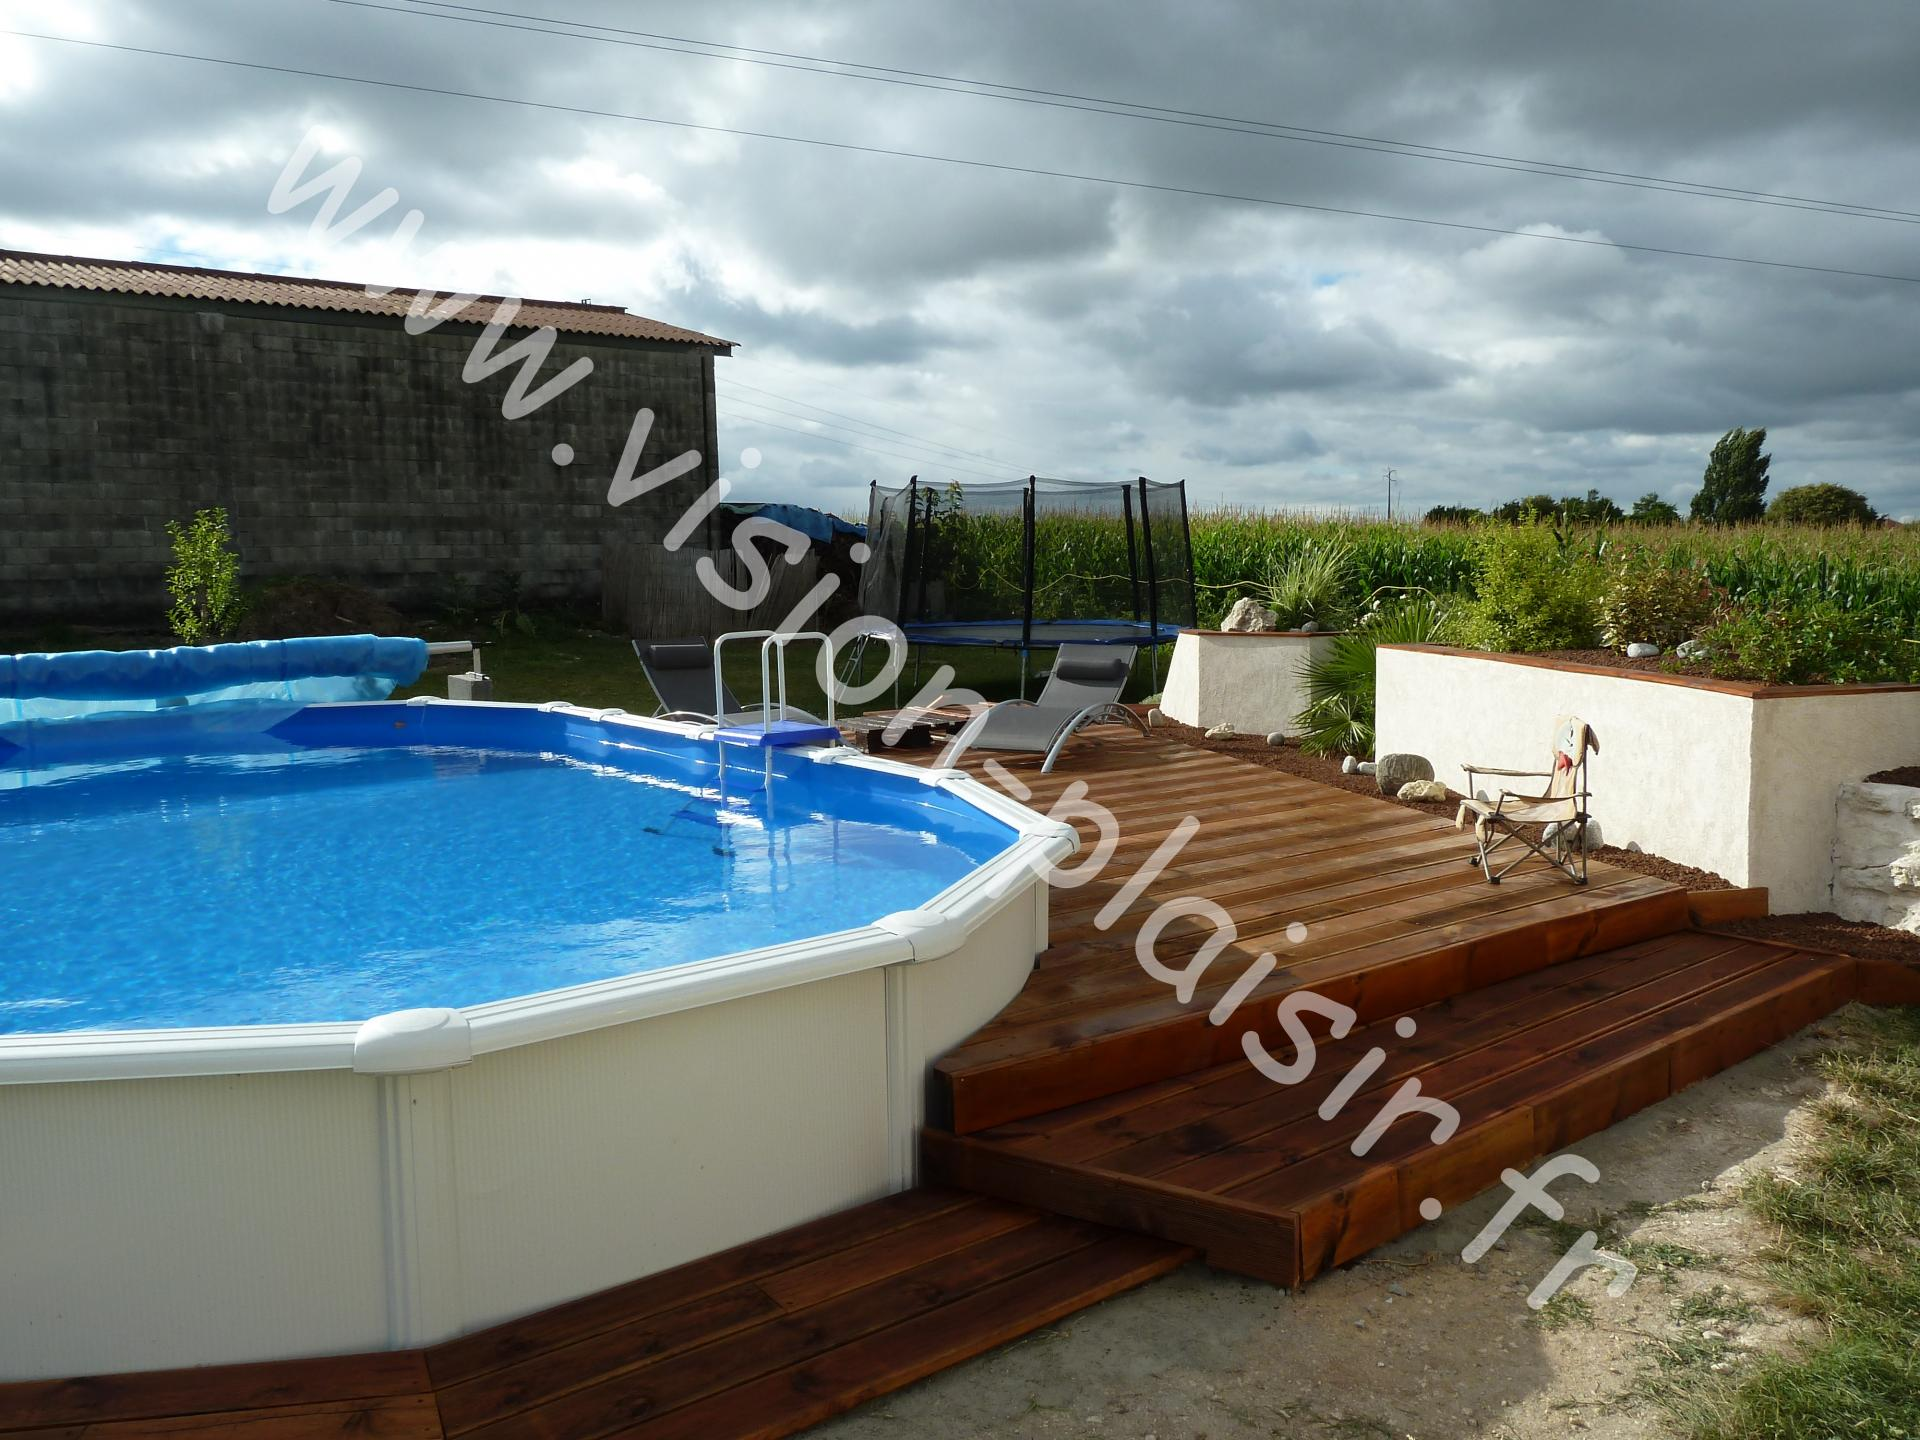 Cout d une piscine co t d 39 une piscine spa piscines for Cout construction piscine beton